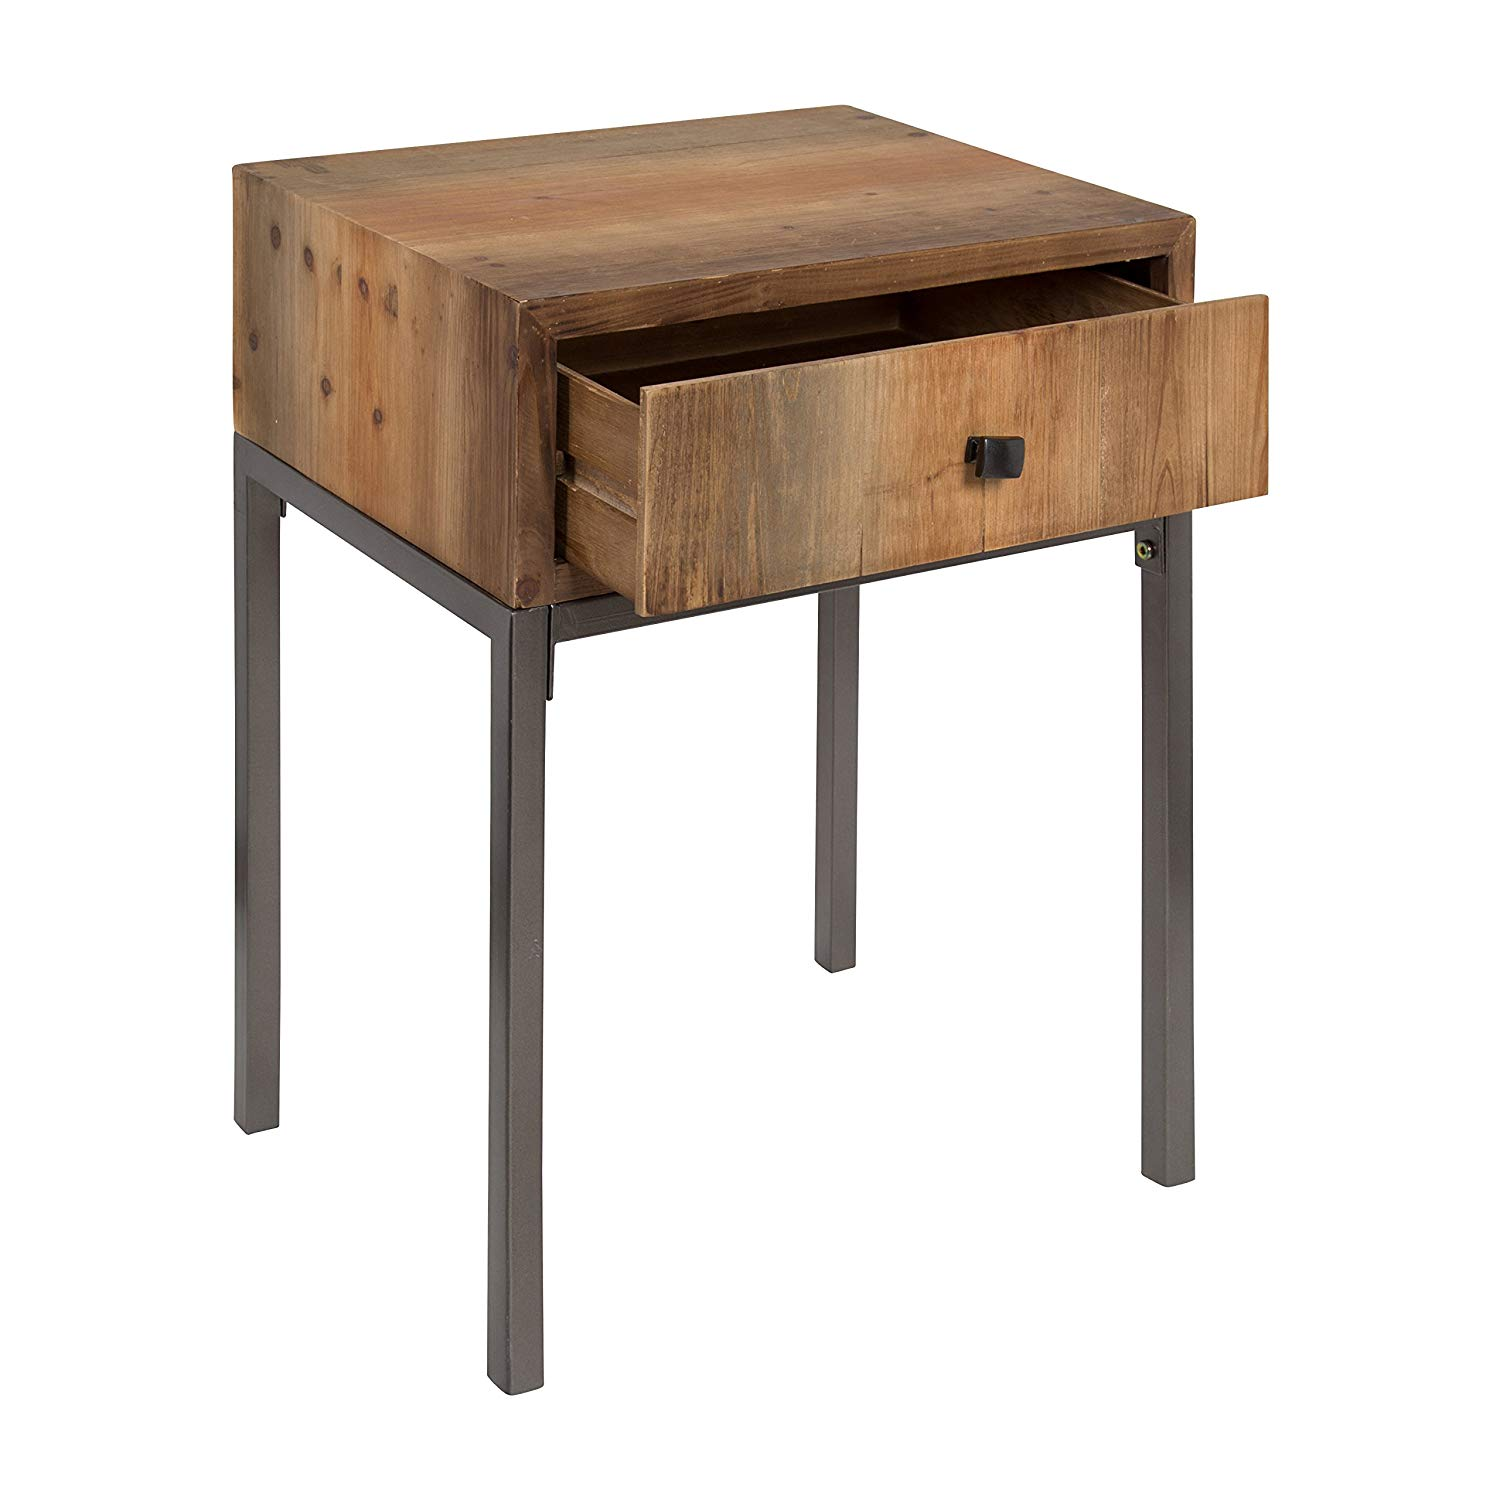 kate and laurel freya wood side accent table with drawer round rustic brown kitchen dining the range bedside lamps wooden drawers build small luxury black cherry coffee vintage